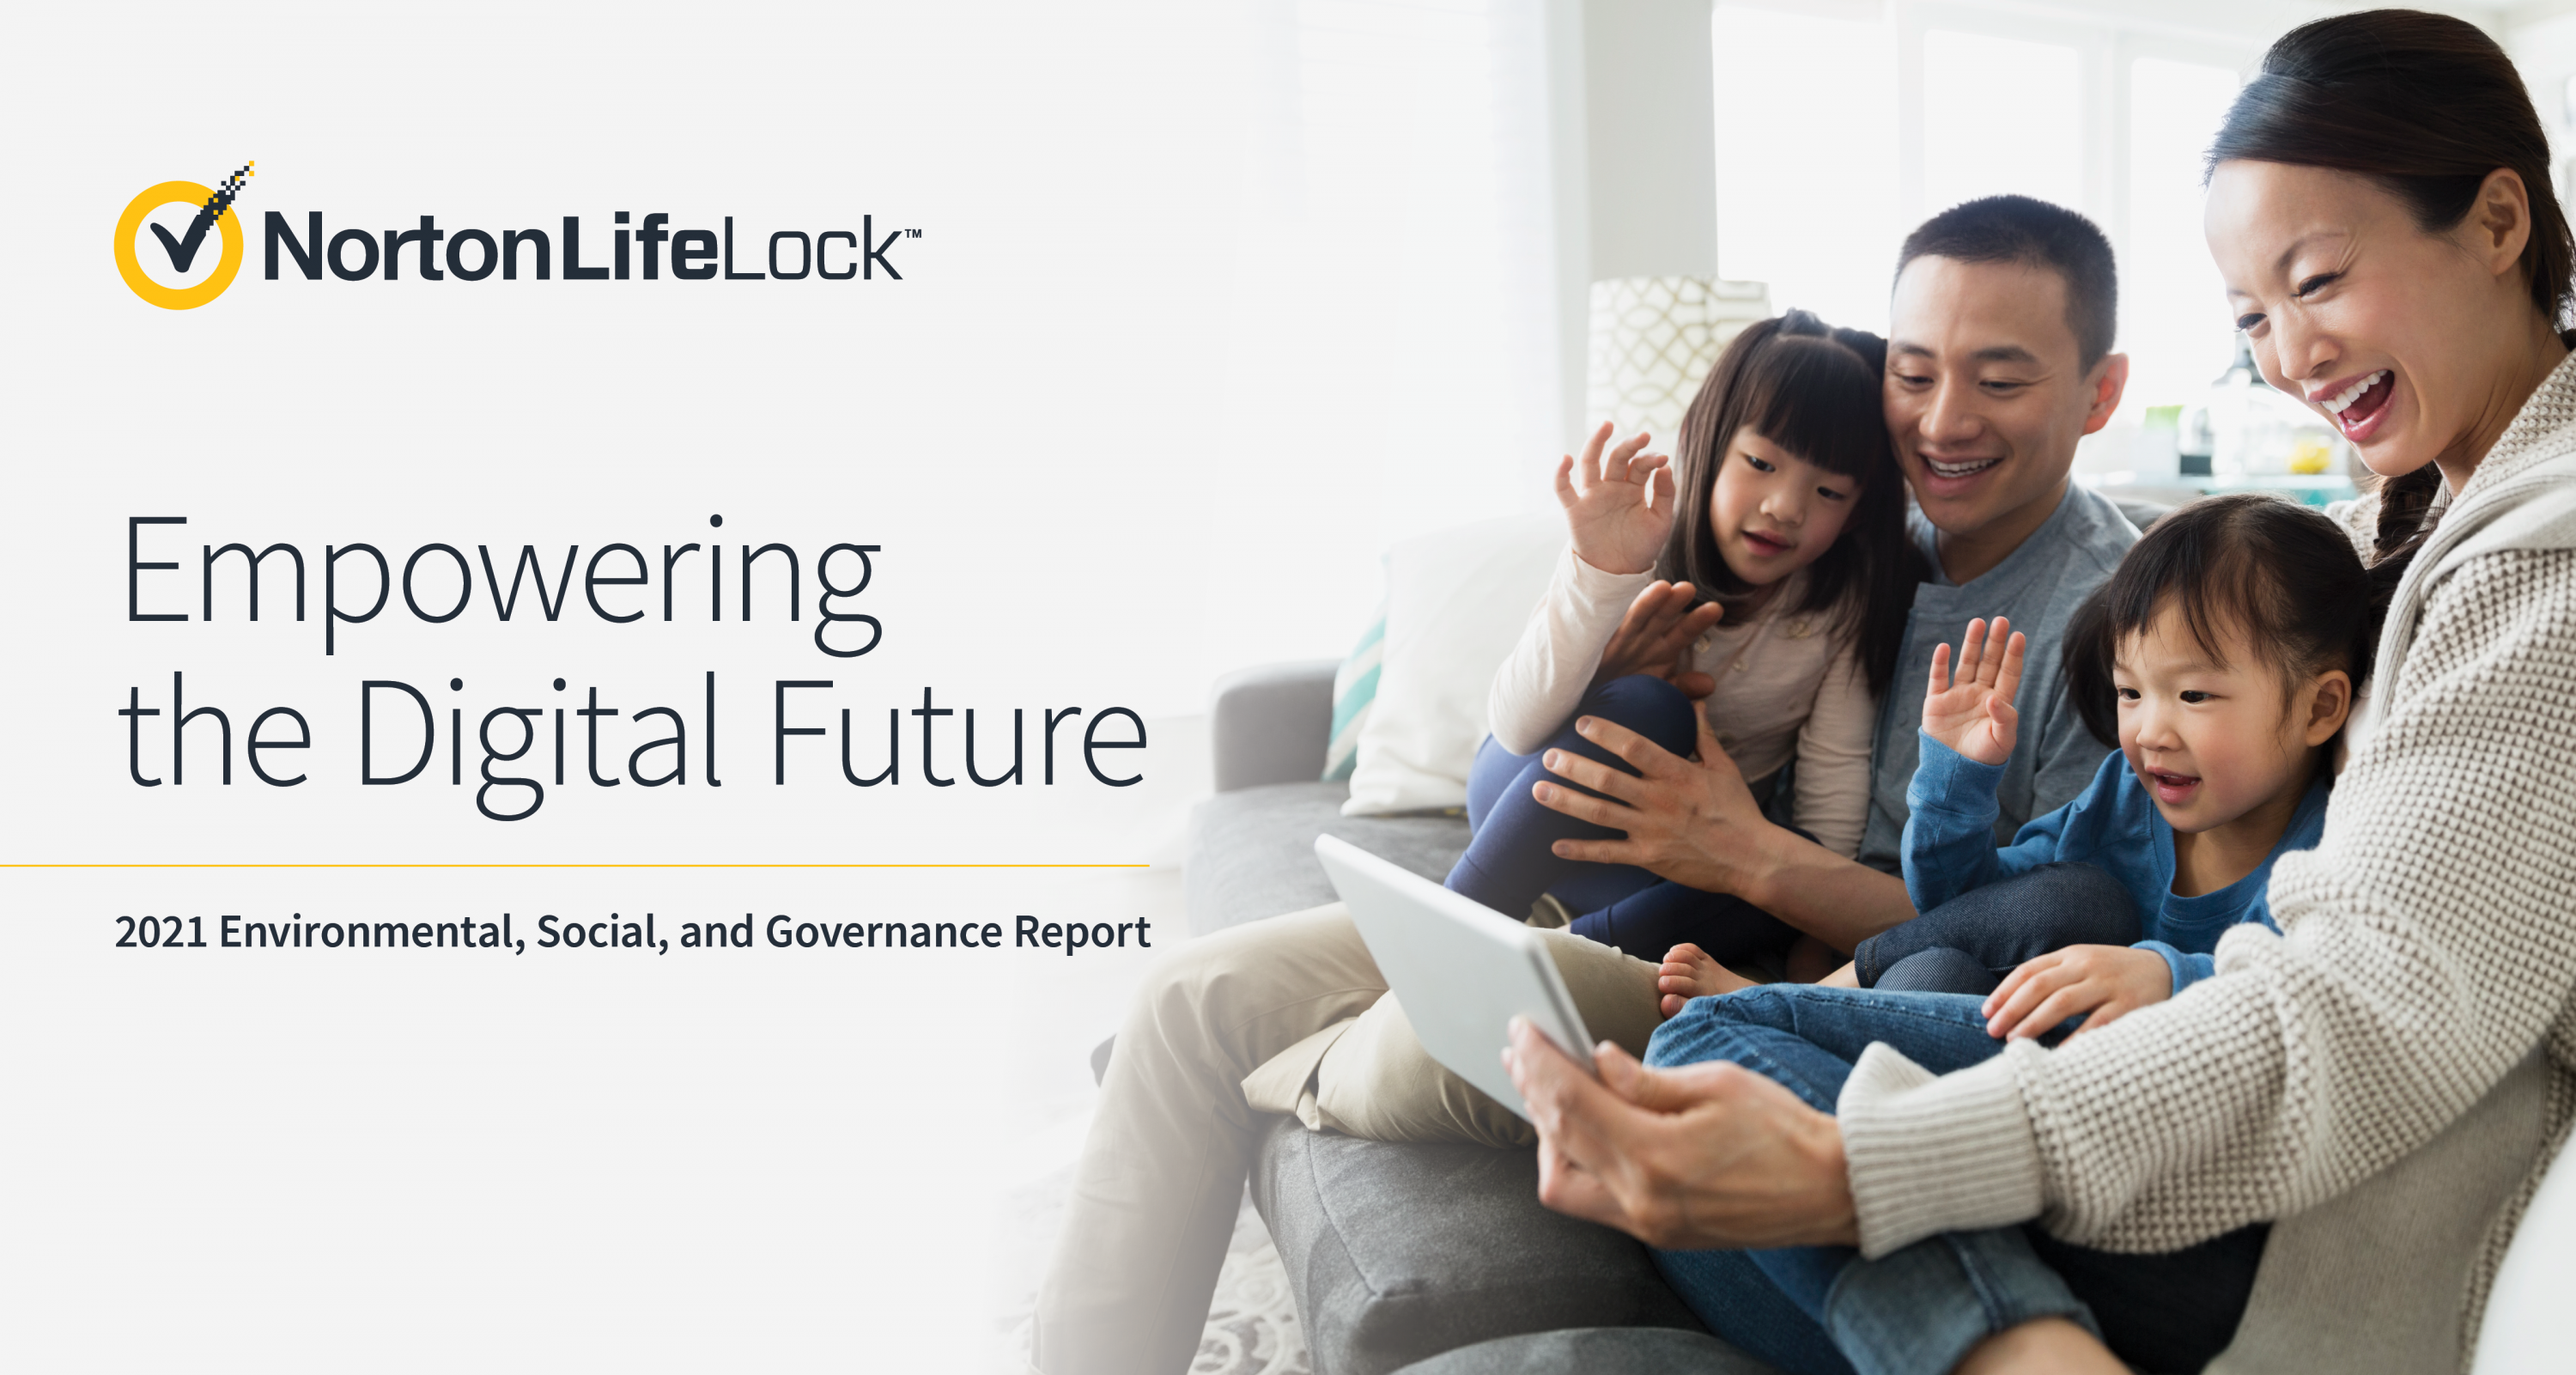 NortonLifeLock Empowering the Digital Future 2021 ESG Report. Image shows family of 4 using a tablet together.